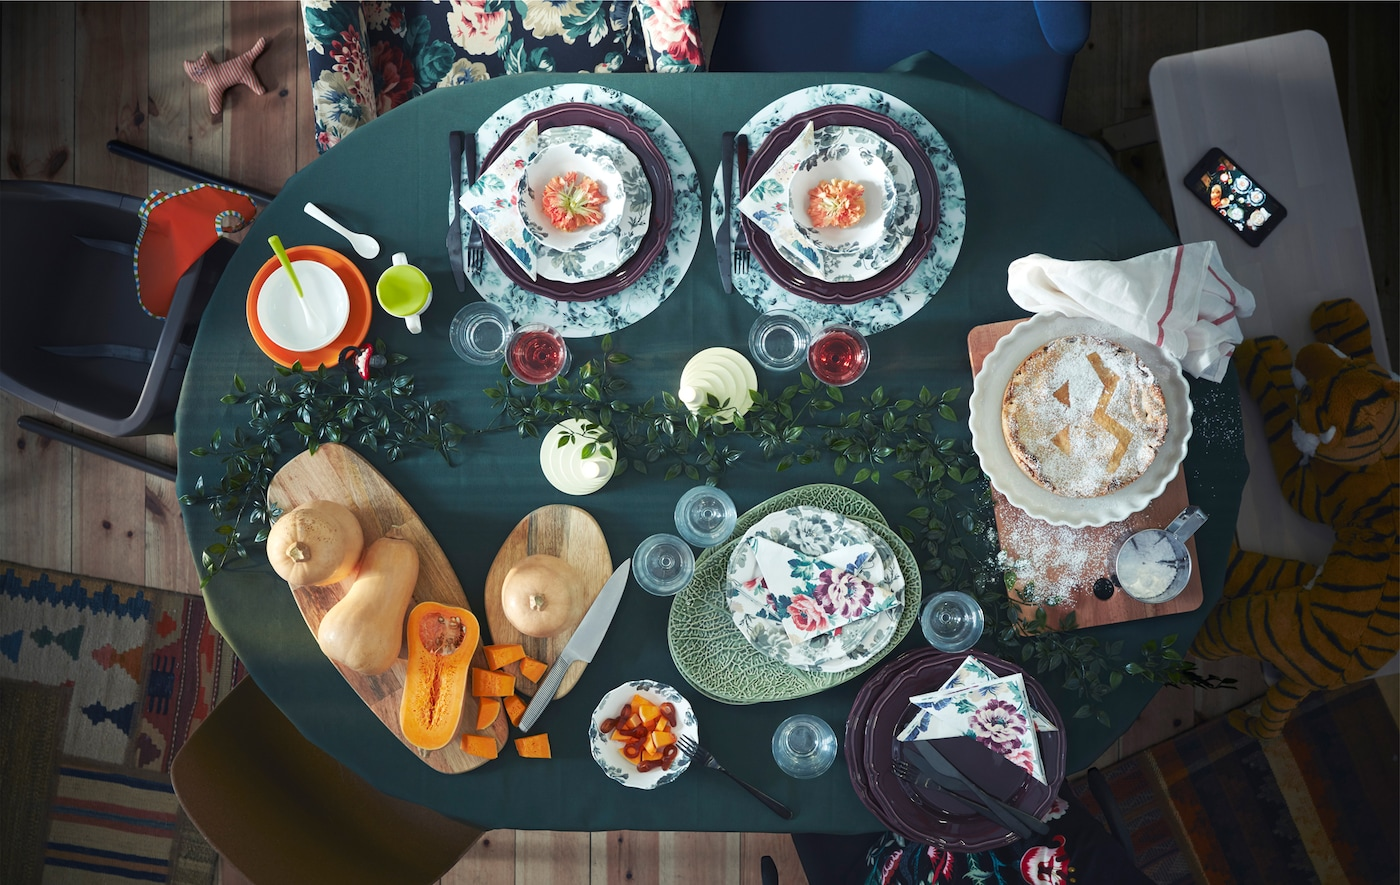 Aerial image of an IKEA INGATORP dining table covered in plates, cutlery and food.